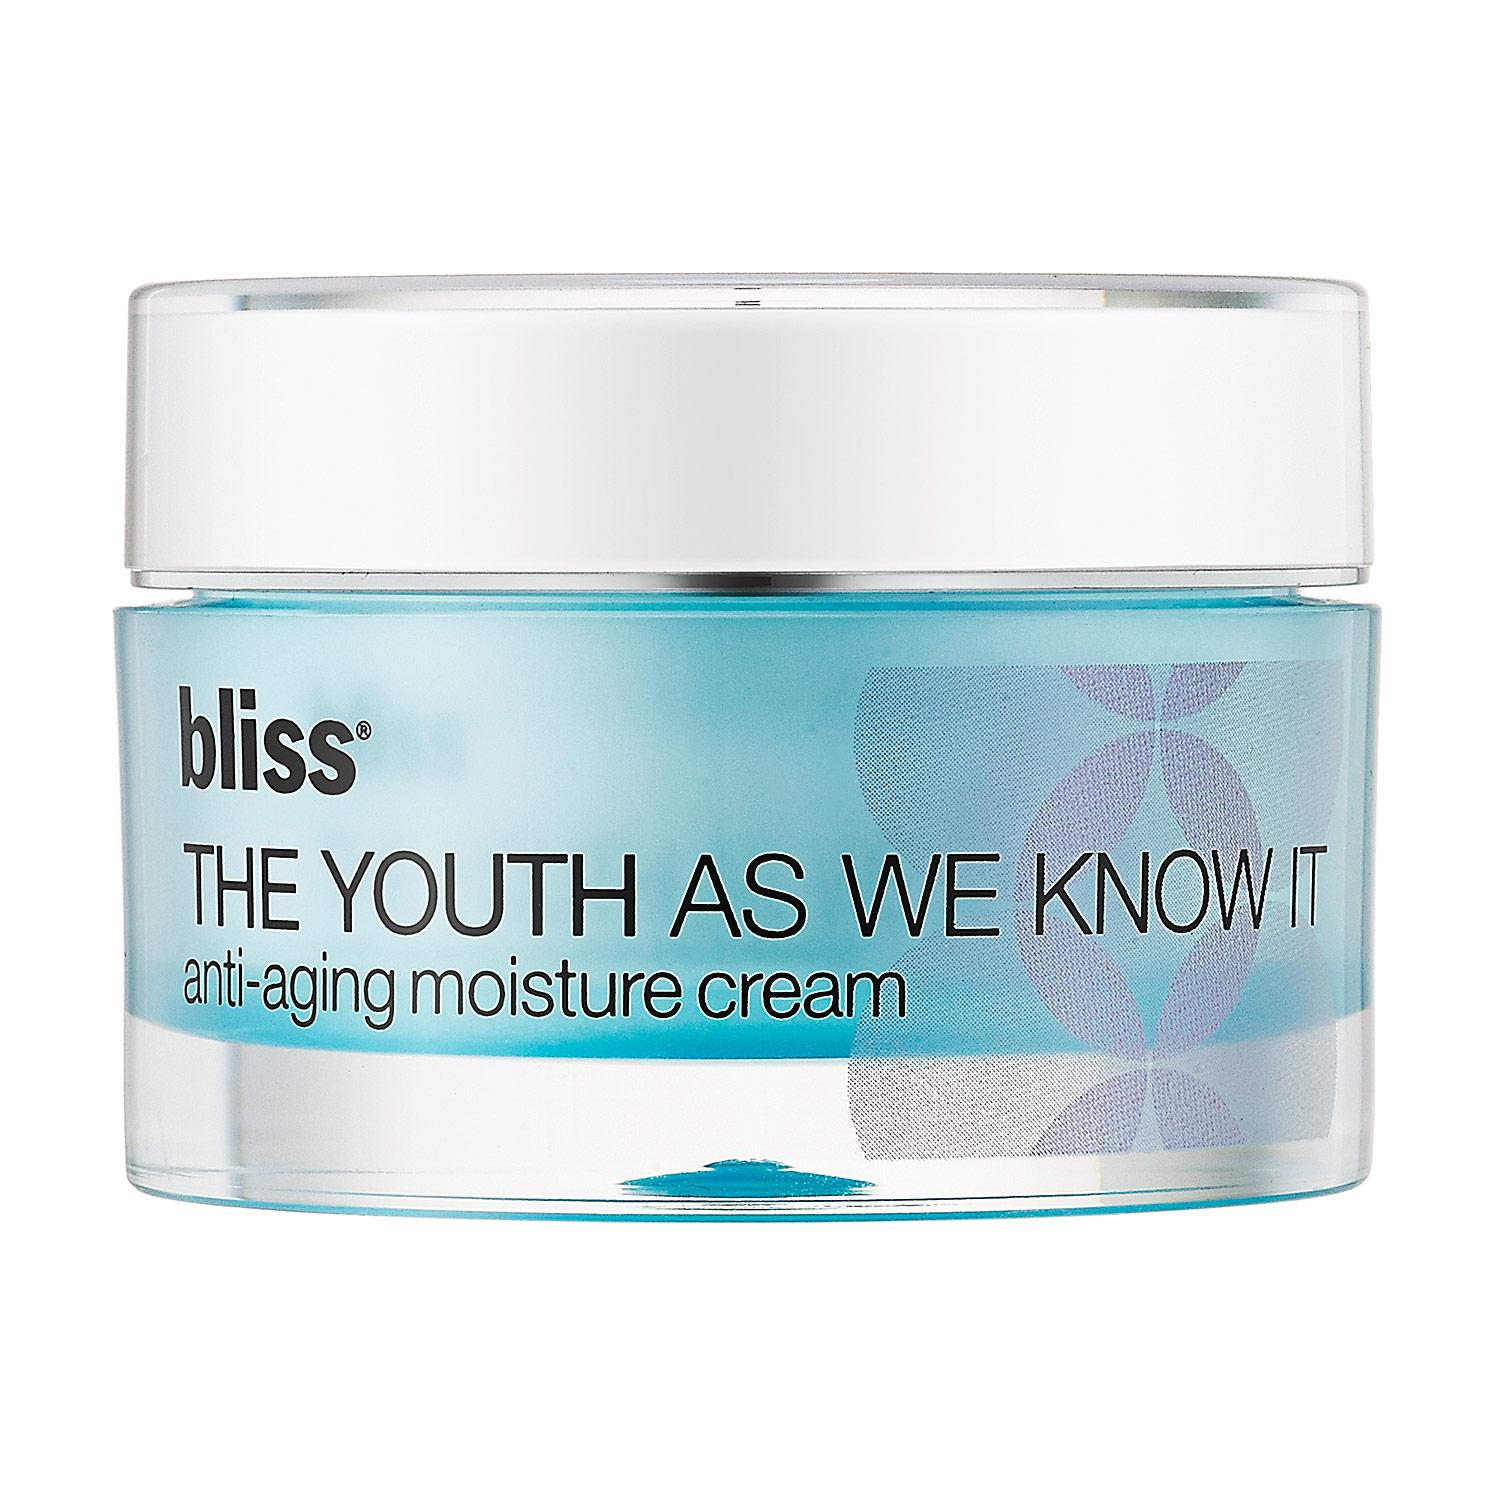 The Youth As We Know It™ Anti-Aging Moisture Cream